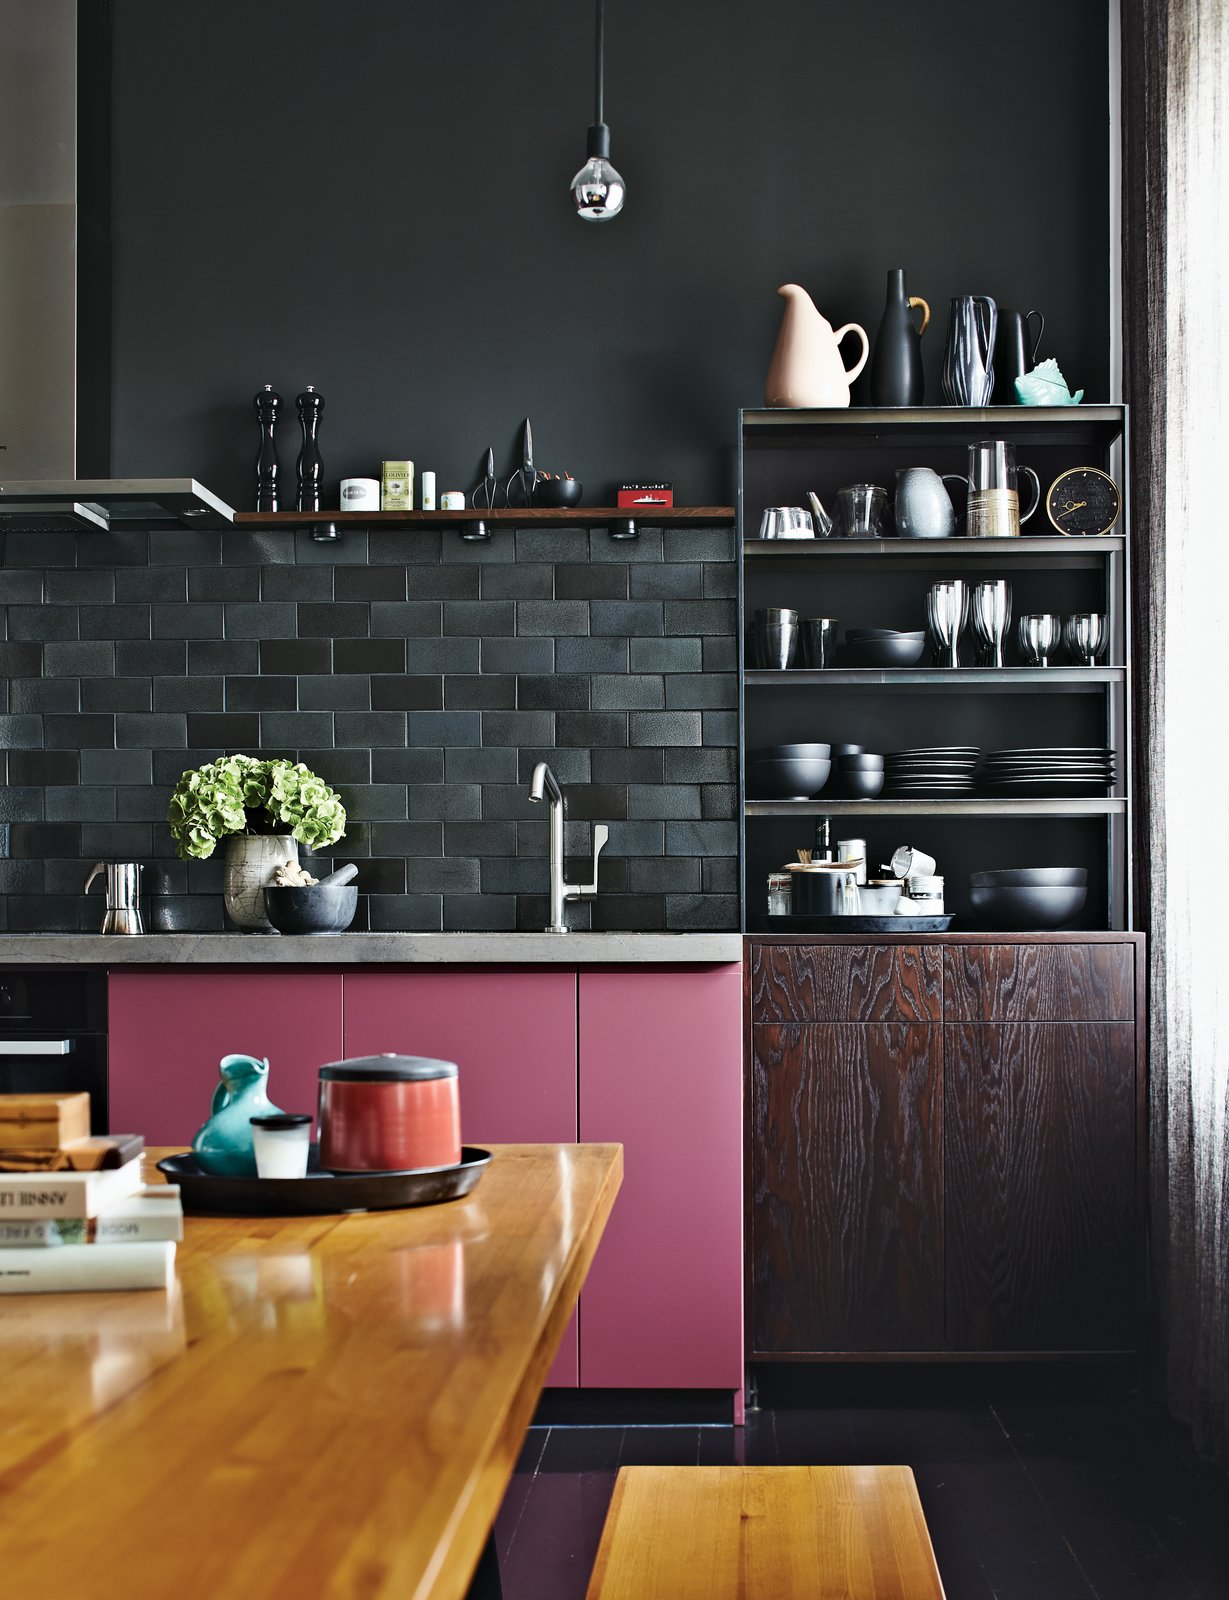 25 Backsplash Ideas For Your Kitchen Renovation - Dwell